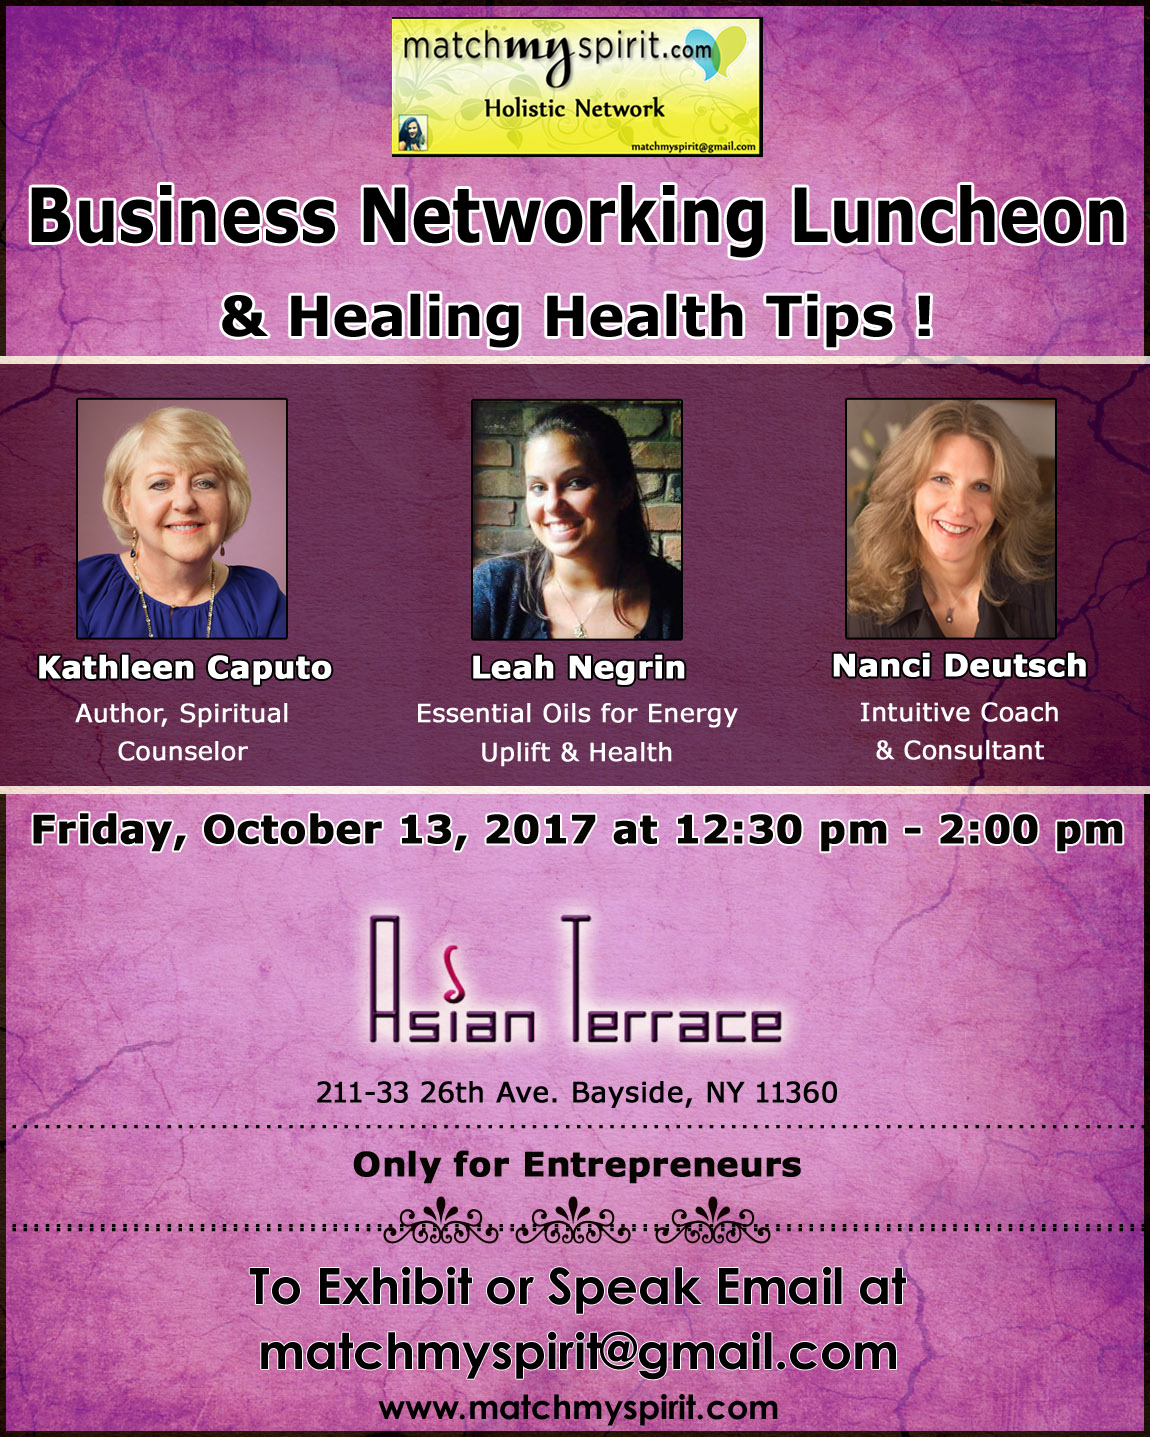 Business Networking Luncheon & Healing Health Tips !